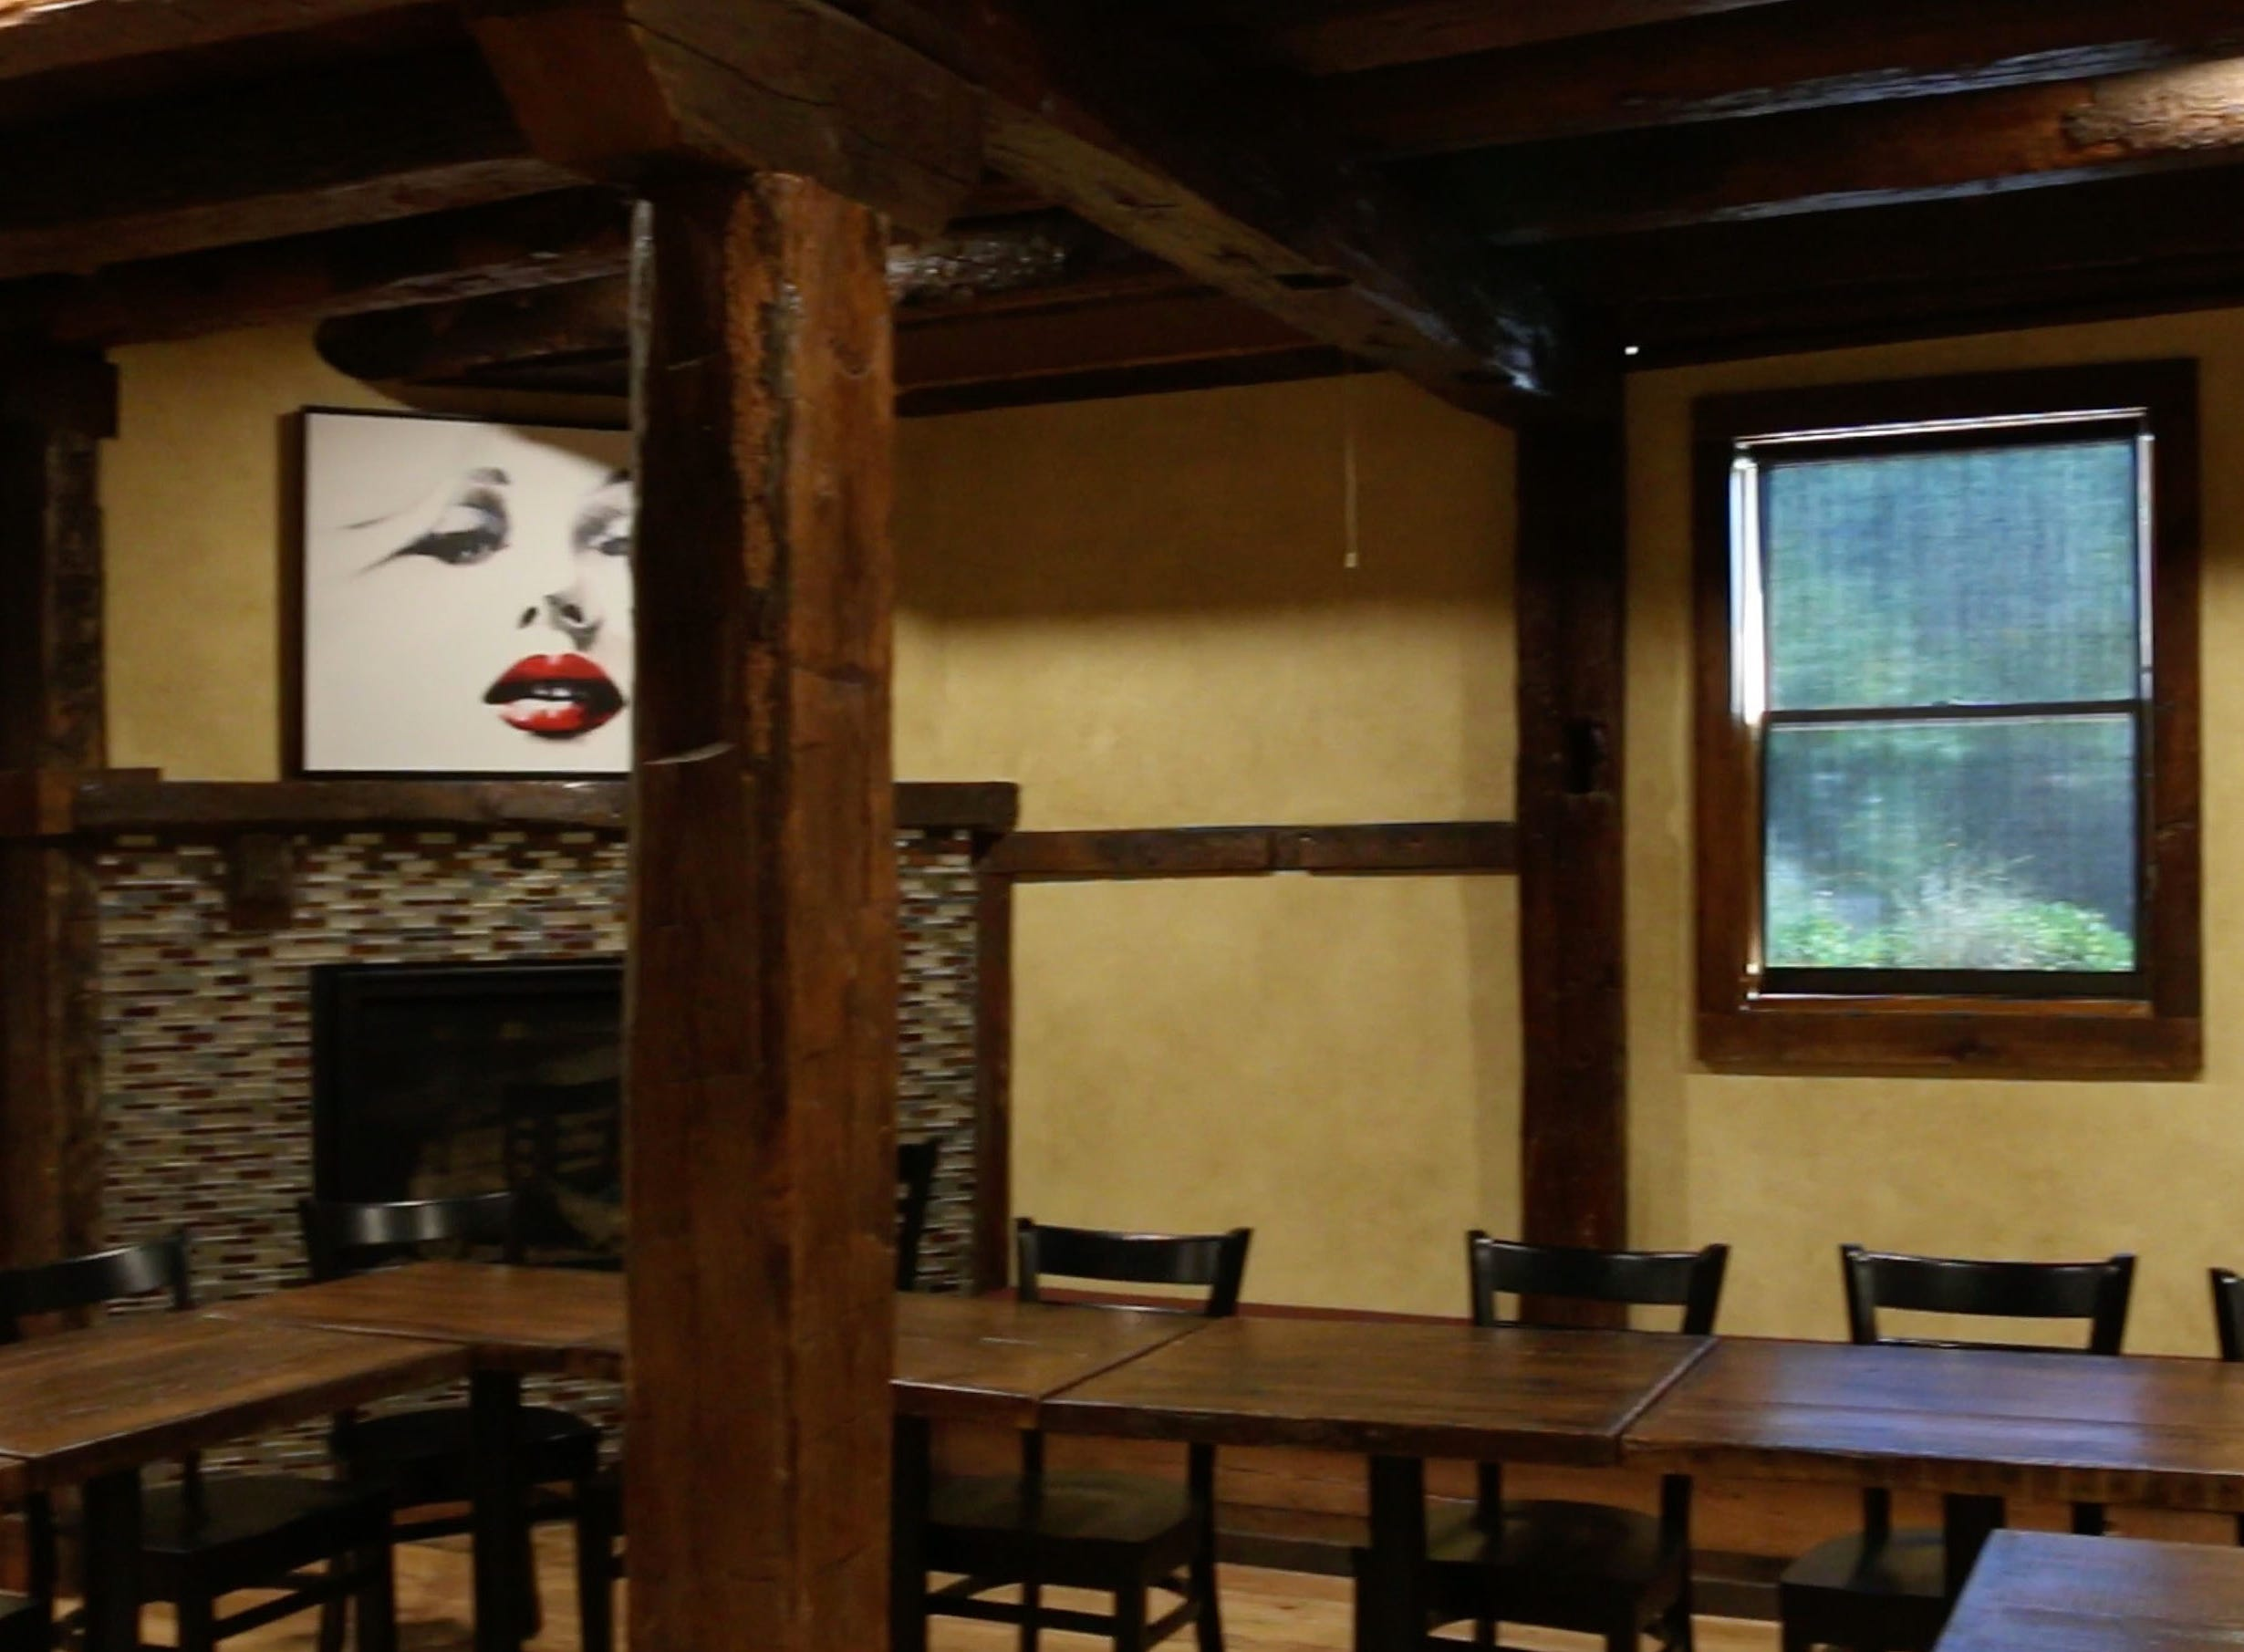 Inside the Granary building at The Blind Horse restaurant and winery, Thursday, September 13, 2018, in Kohler, Wis.